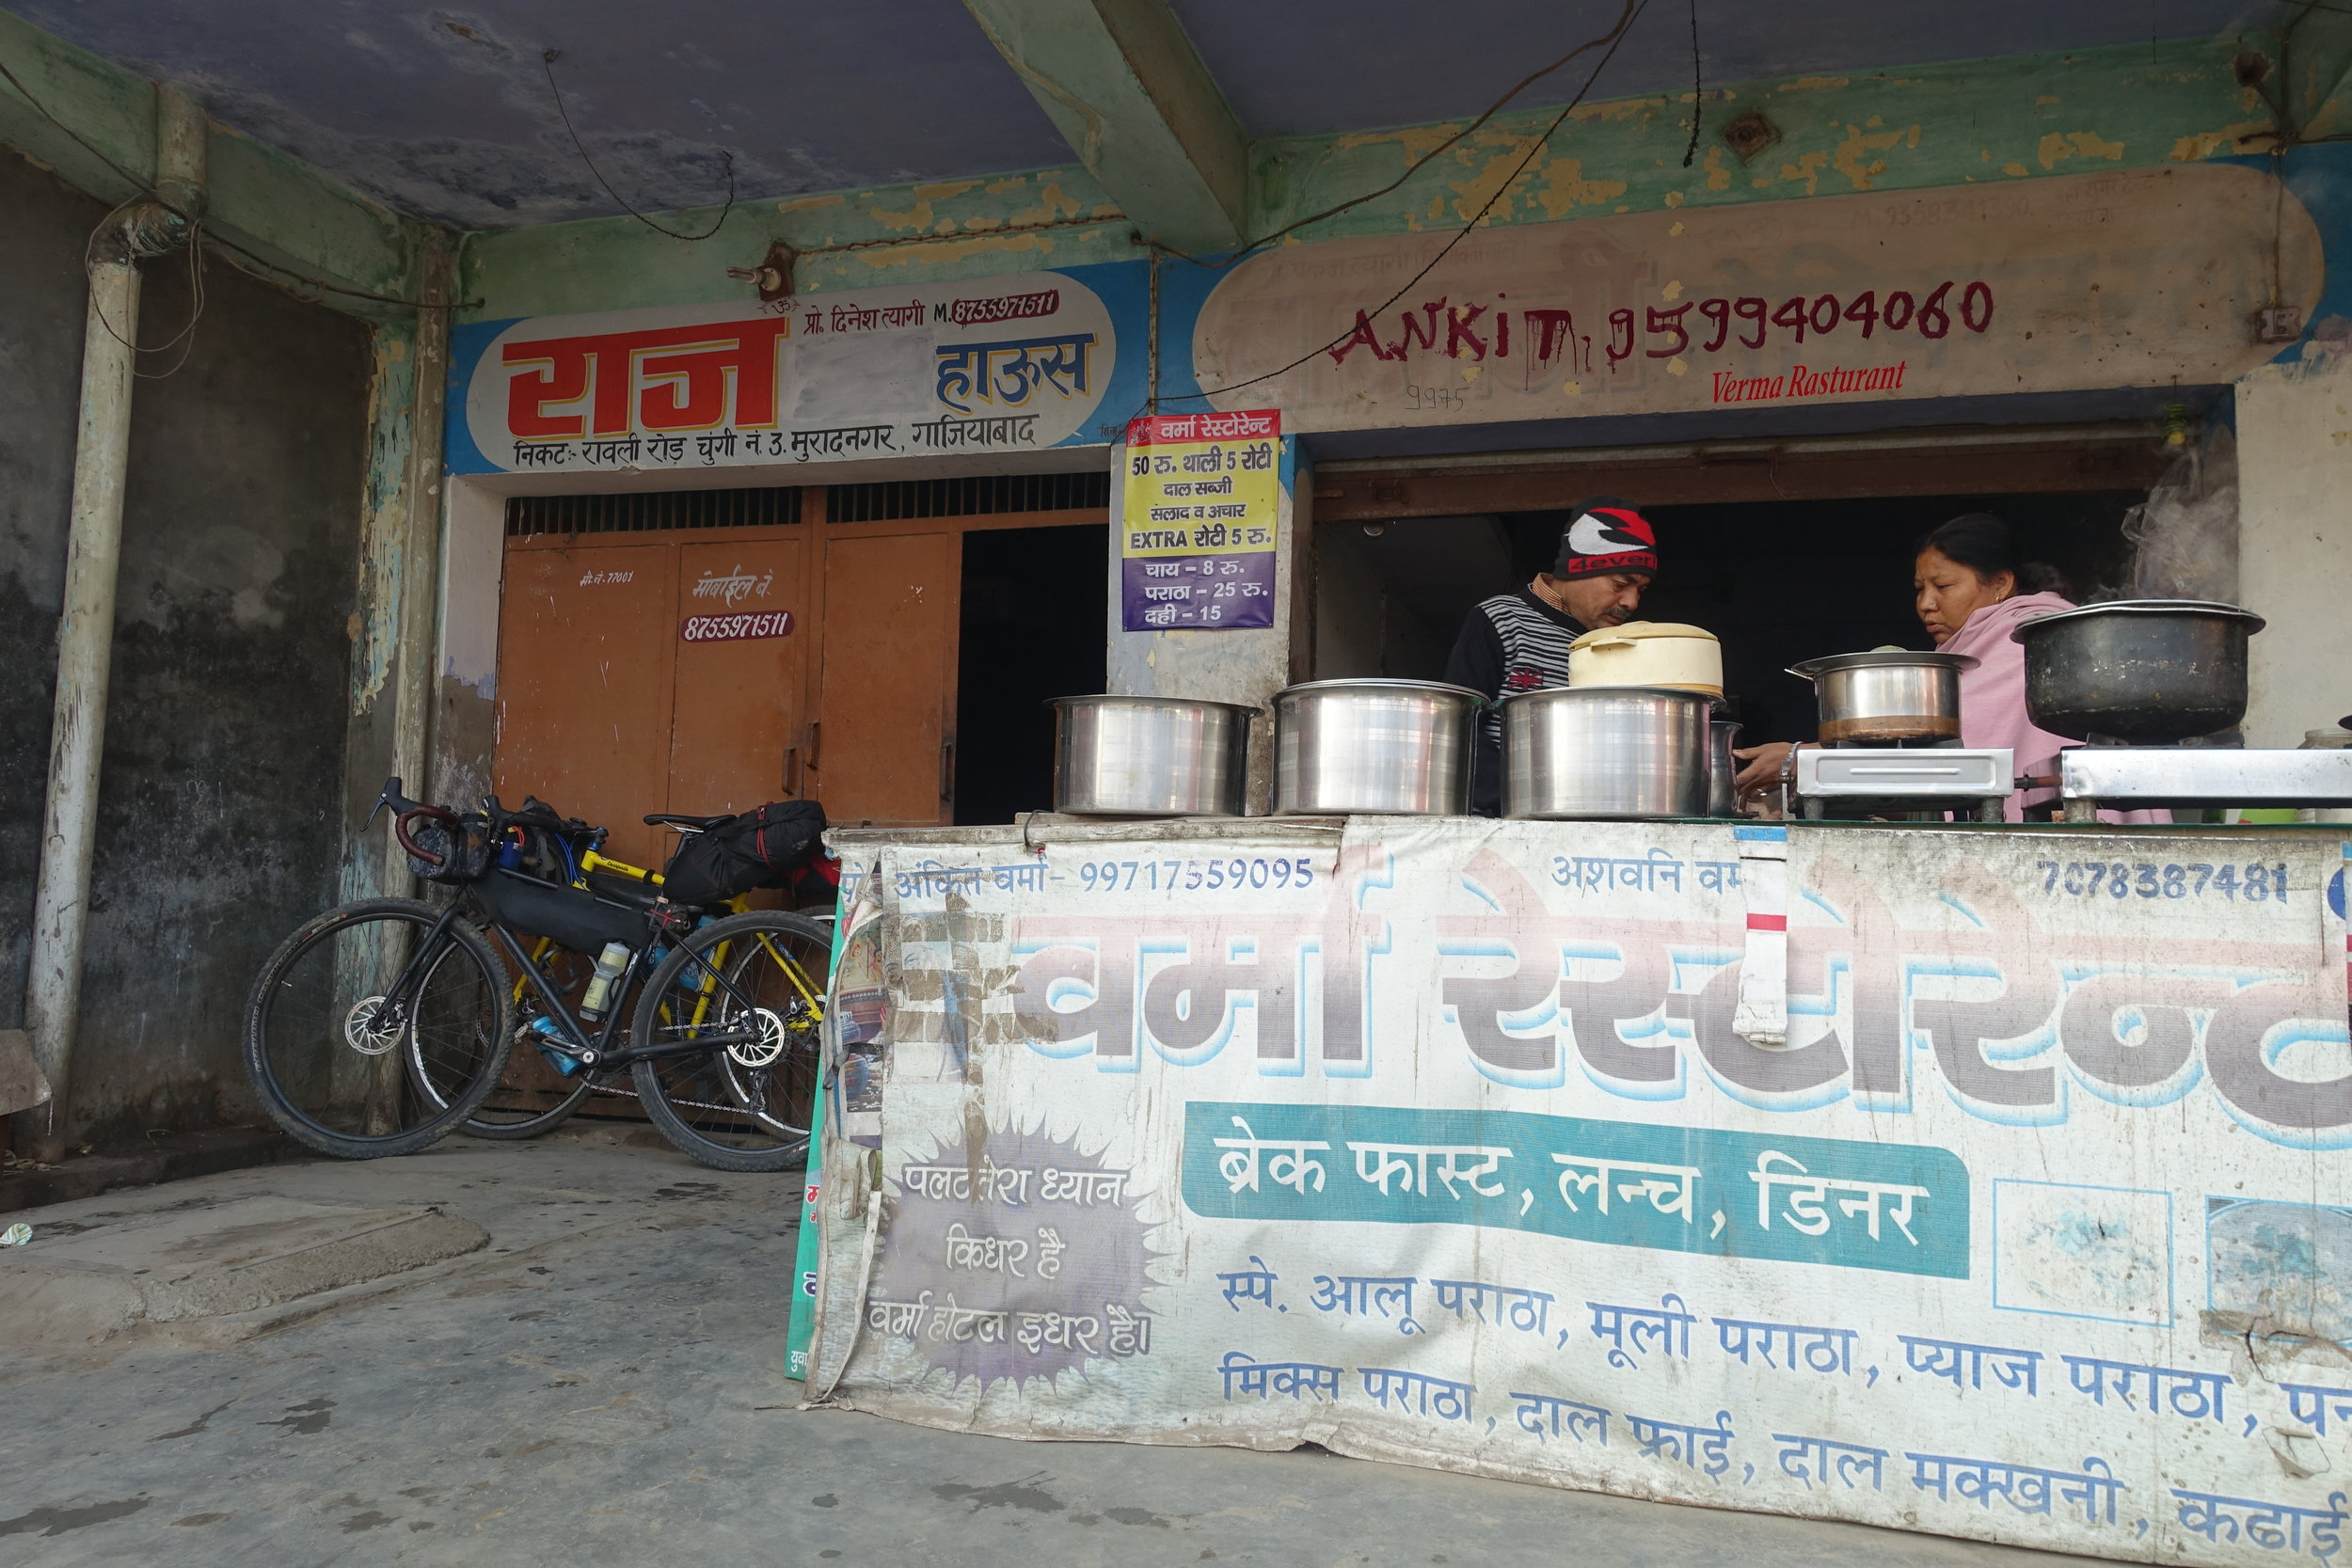 8am breakfast spot. This is a typical rural style food outlet where there isn't a menu and you just get given whatever they make, fresh and to order, right in front you to behold. This time we had stuffed parantha (typical Indian flatbread)with paneer (cottage cheese), onions and chillies. And of course chai. We went through endless chai.